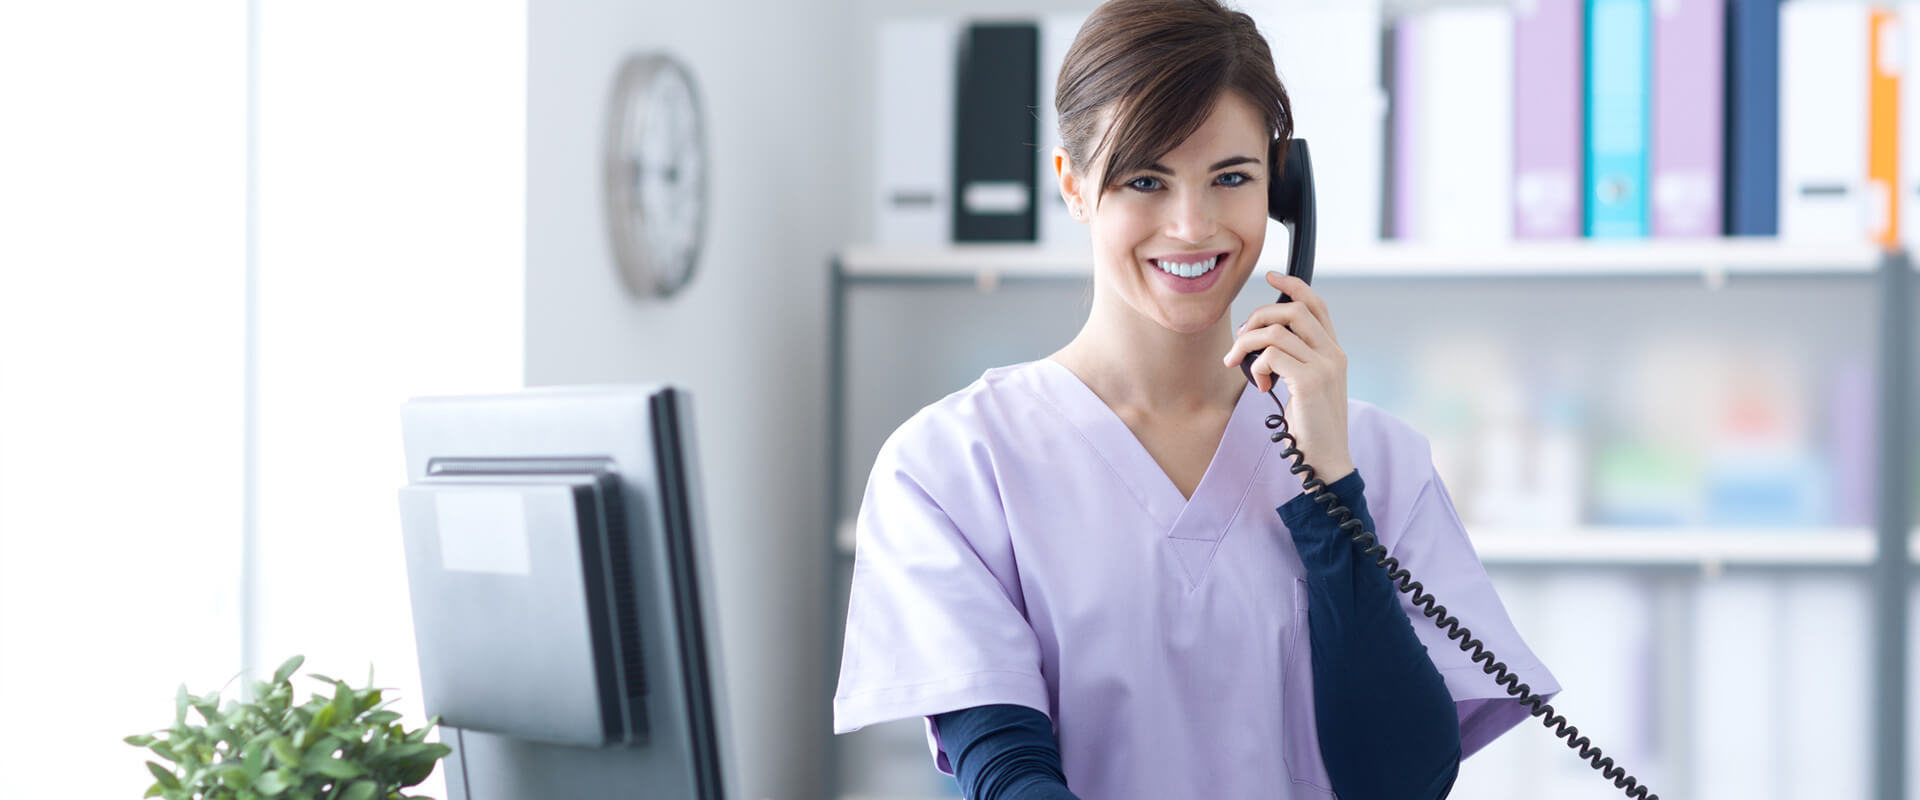 Receptionist answering a phone call at dental office